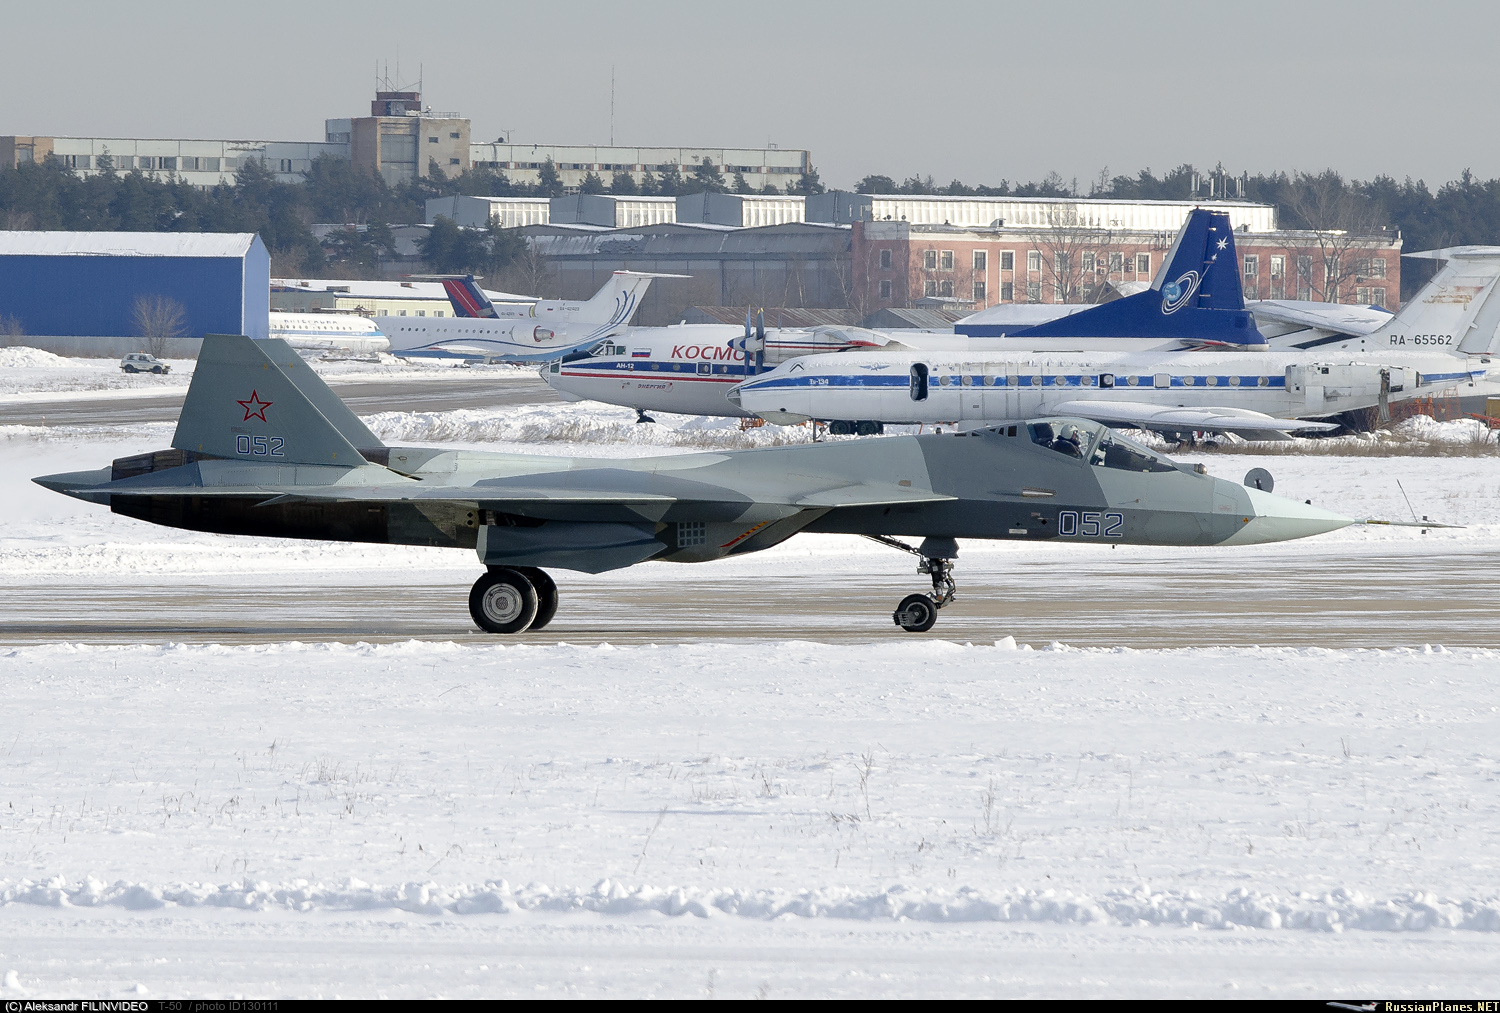 http://russianplanes.net/images/to131000/130111.jpg